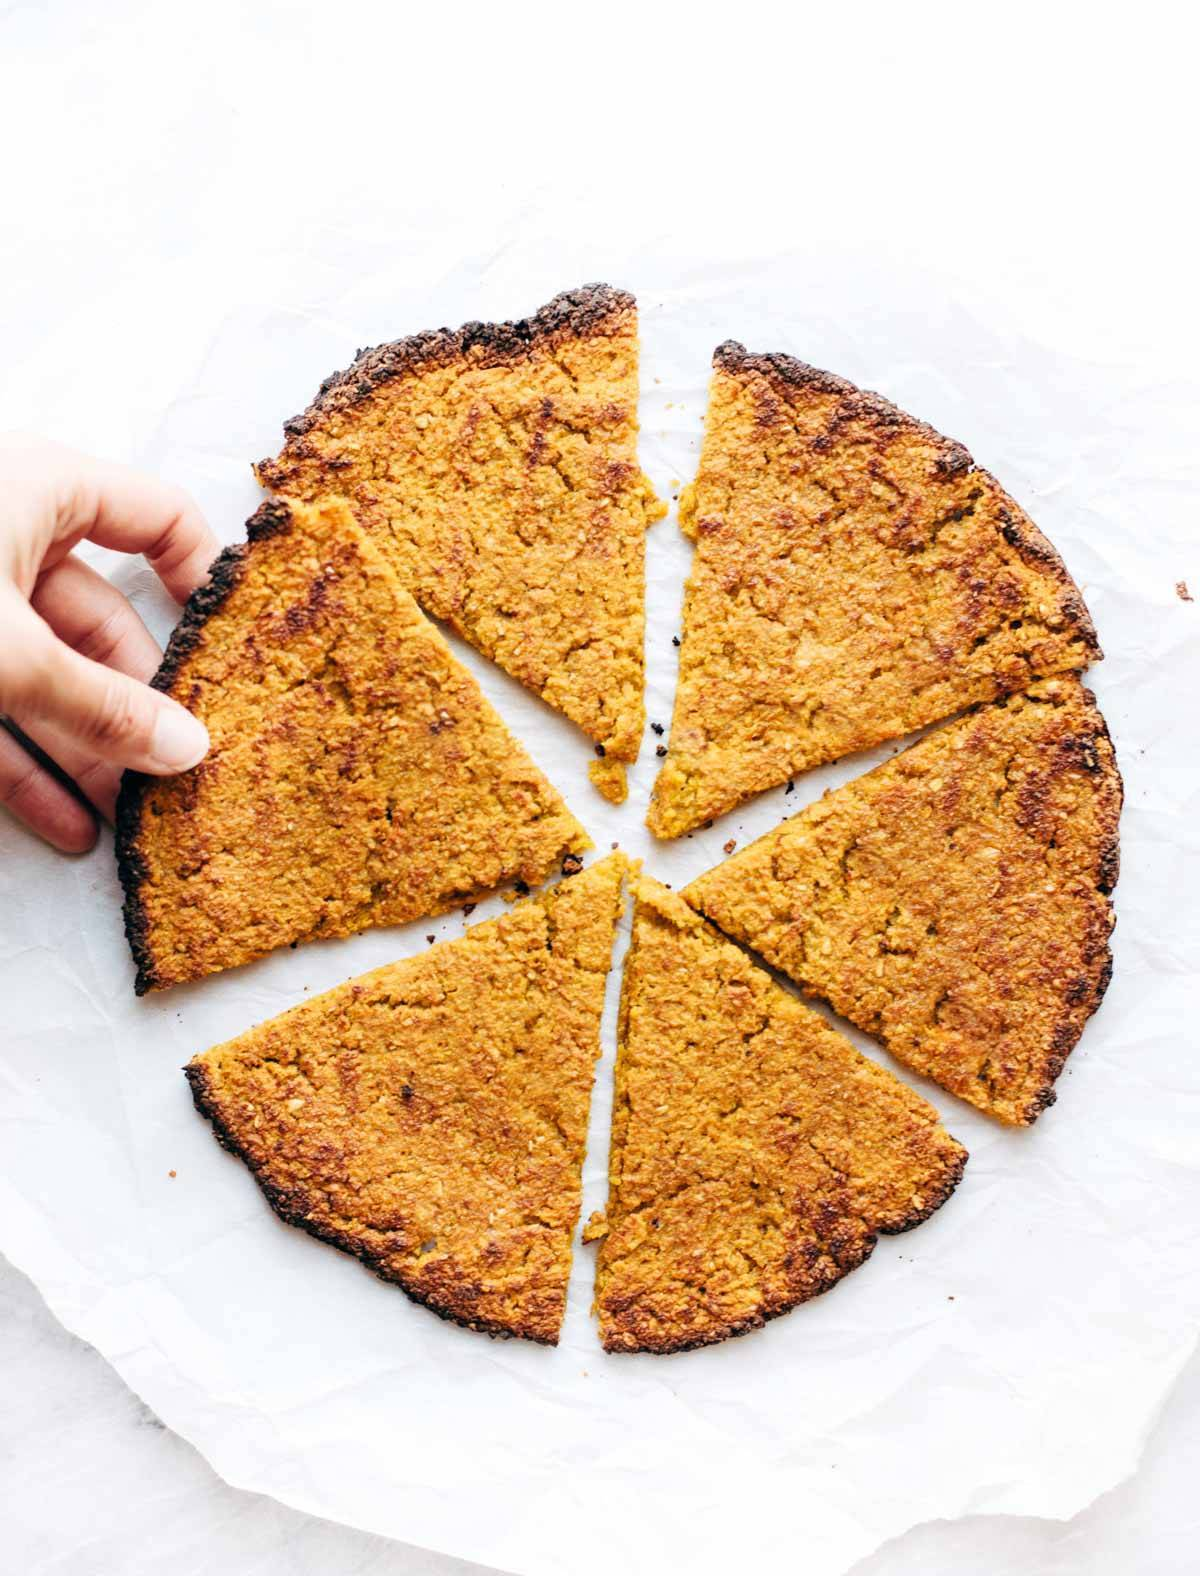 3 ingredient sweet potato pizza crust - all you need is sweet potatoes, rolled oats, and an egg. SUPER easy hand-holdable healthy pizza crust! | pinchofyum.com